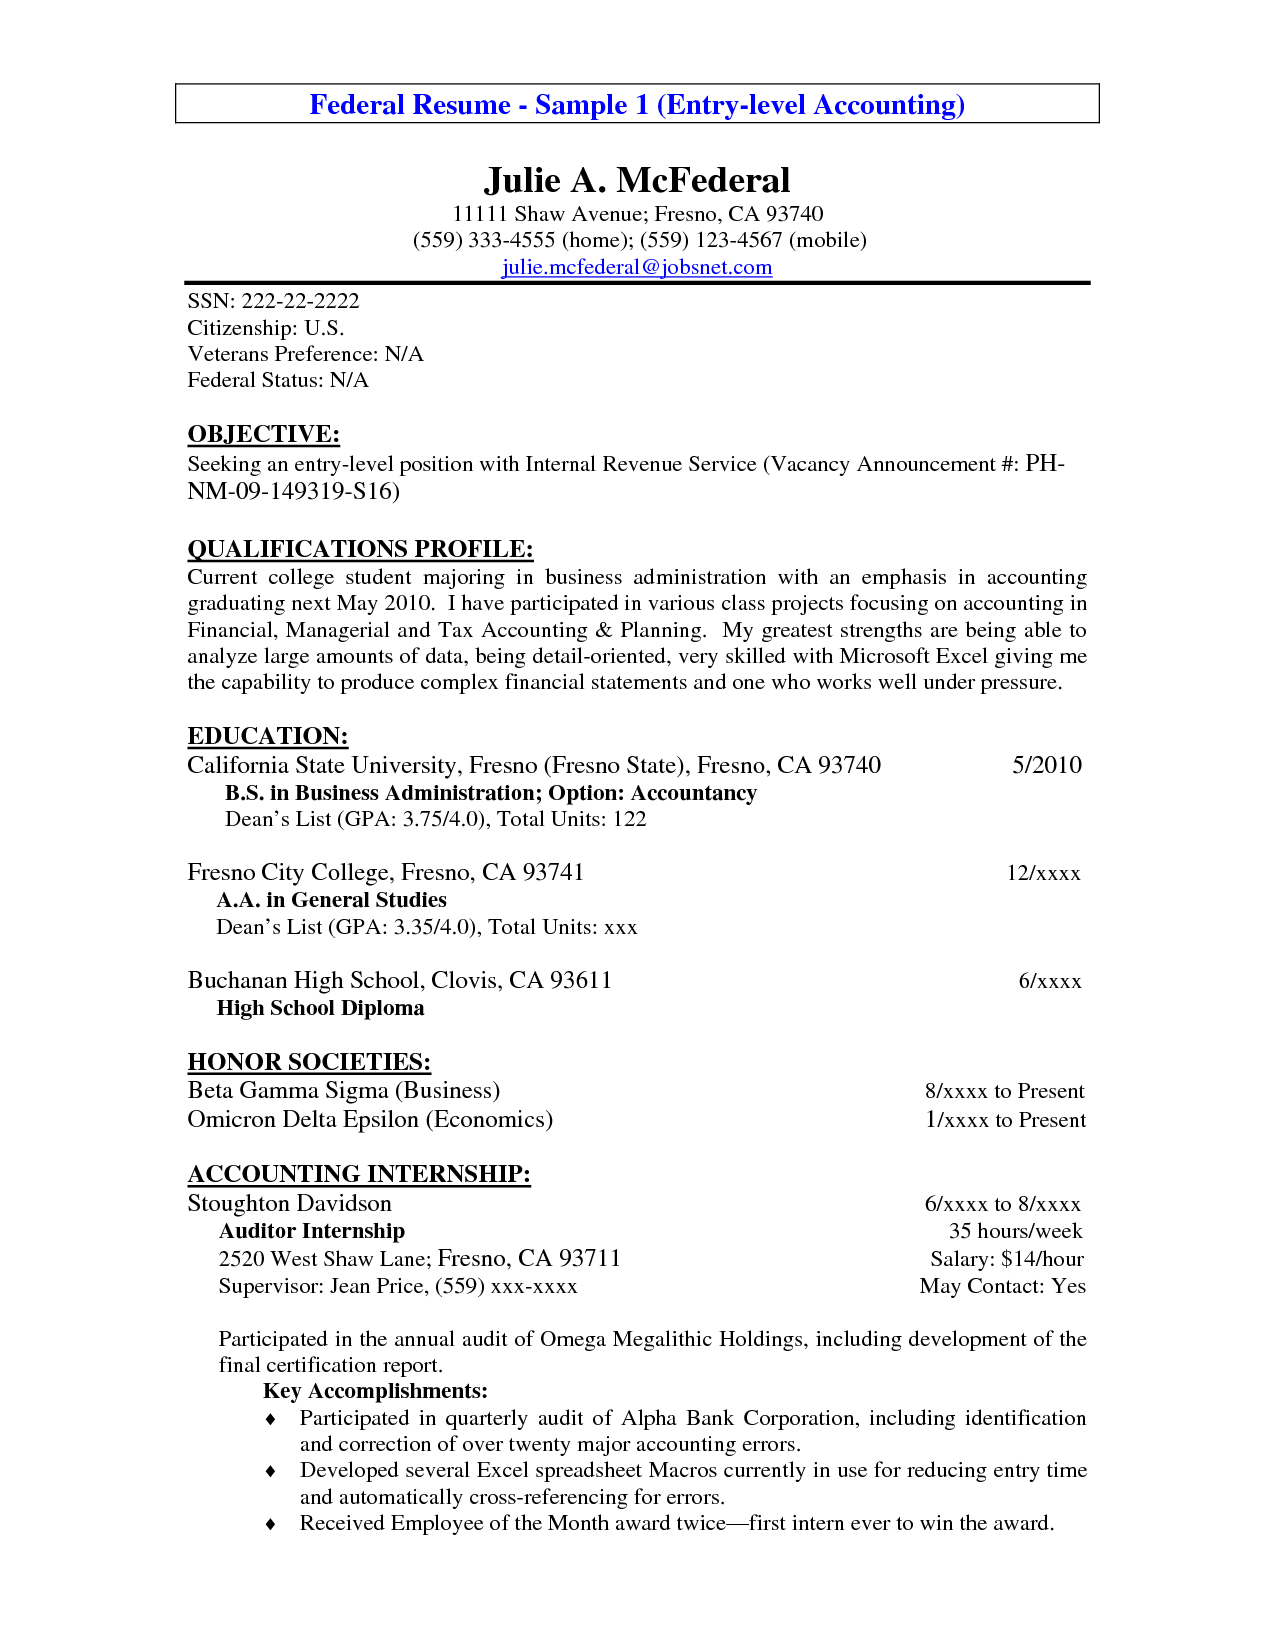 Accounting Resume Objectives Read more – Objective for Accounting Resume